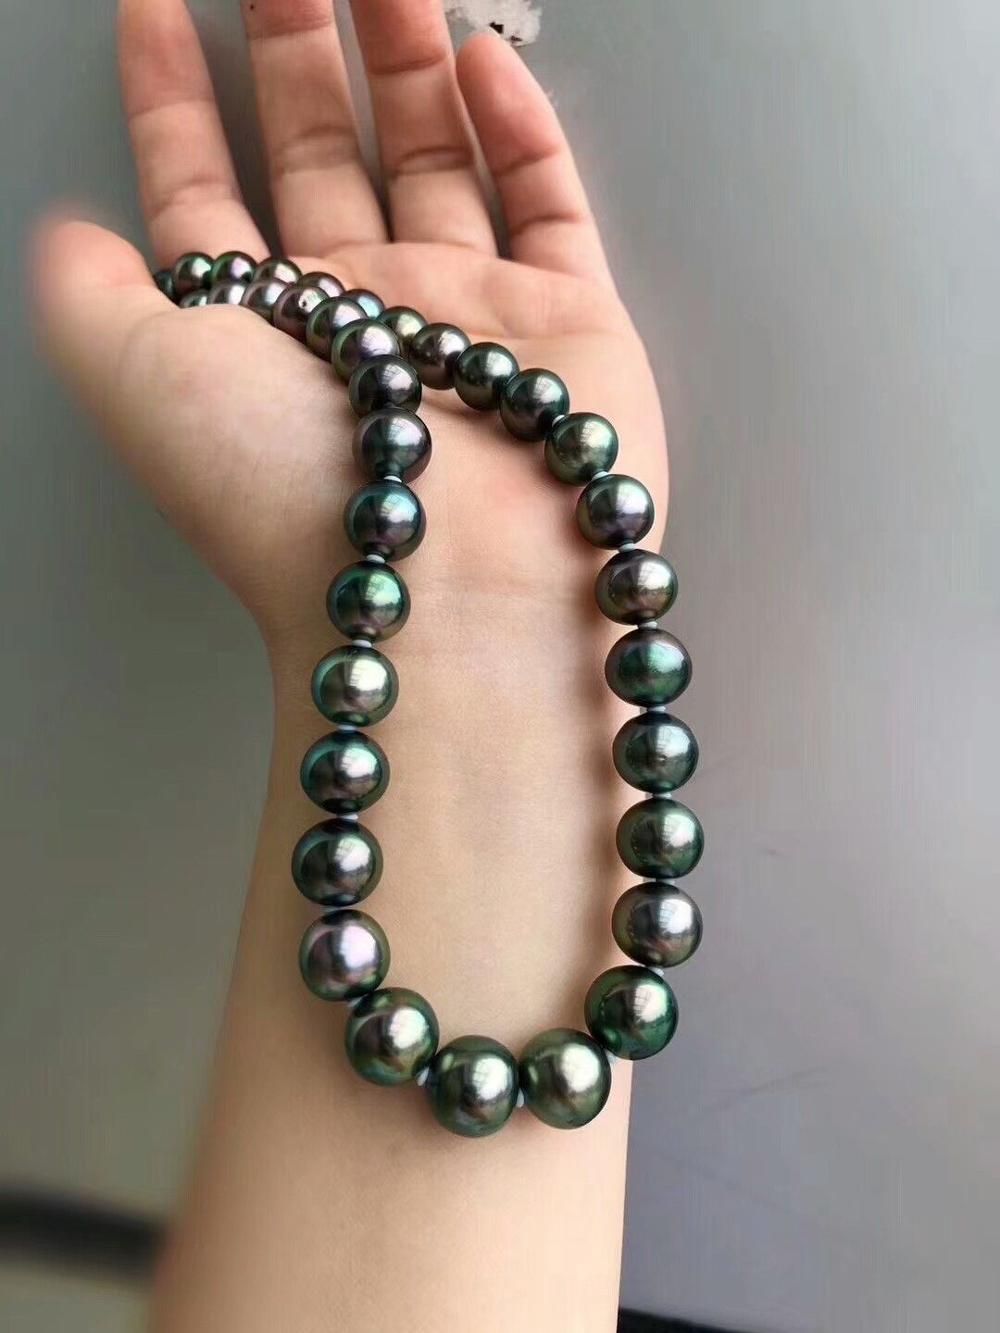 HUGE AAA 10-11MM ROUND SOUTH SEA GENUINE BLACK GREEN PEARL NECKLACE 18 925silver GOLDHUGE AAA 10-11MM ROUND SOUTH SEA GENUINE BLACK GREEN PEARL NECKLACE 18 925silver GOLD